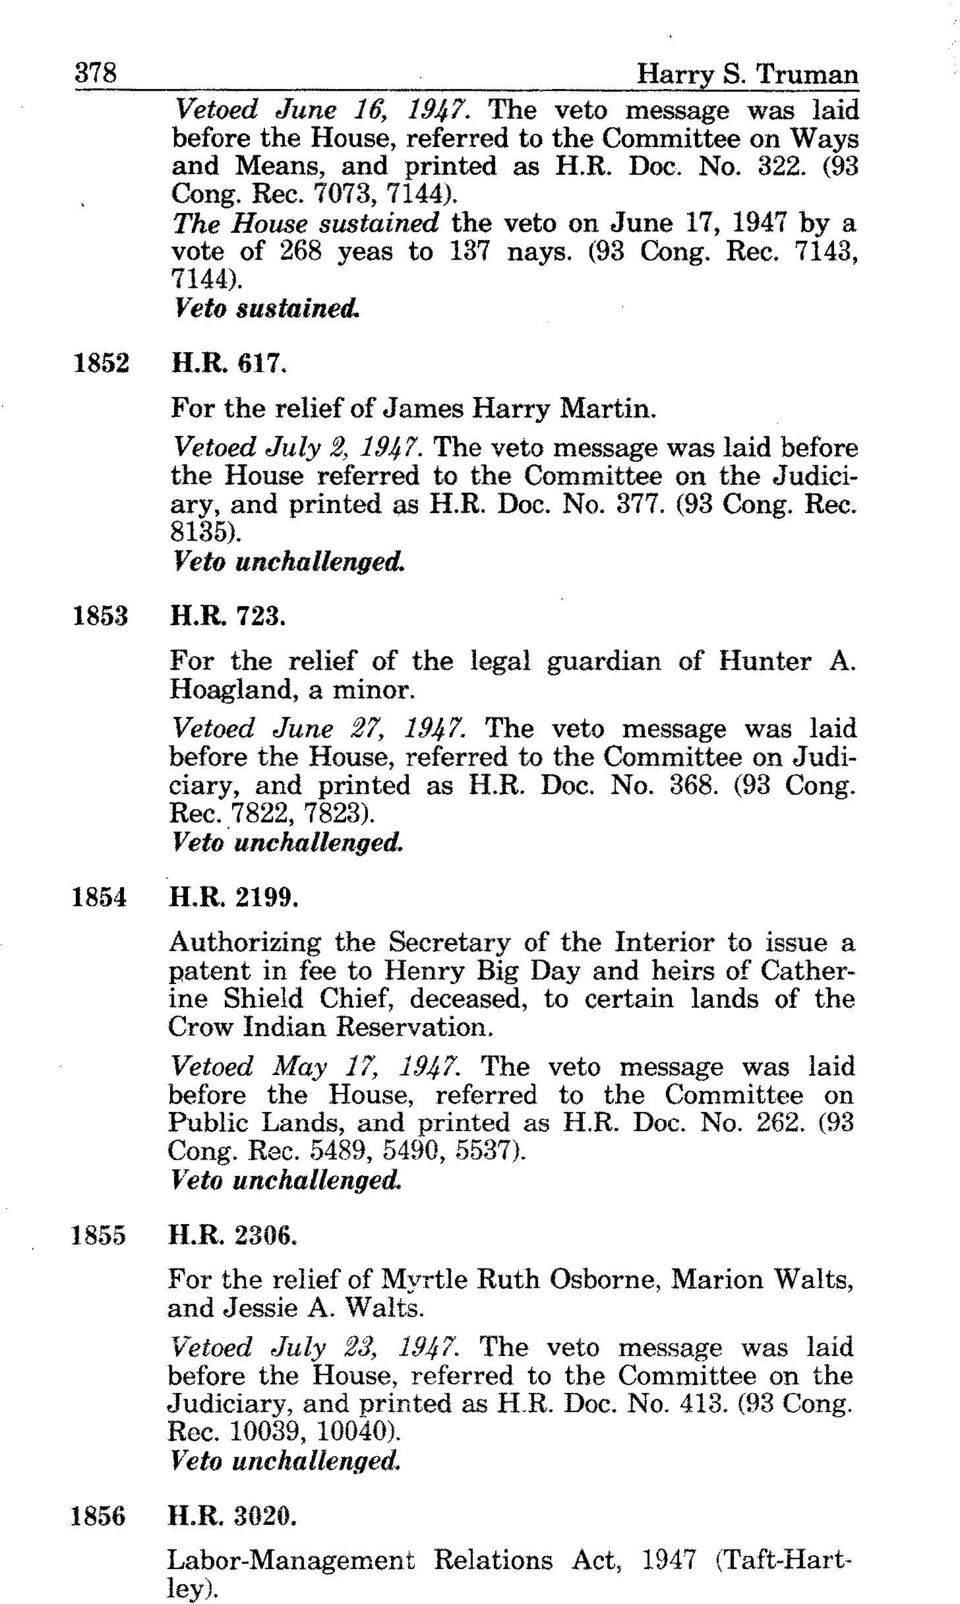 Vetoed July 2, 19.42'. The veto message was laid before the House referred to the Committee on the Judiciary, and printed as H.R. Doc. No. 377. (93 Cong. Rec. 8135). Veto unchul~enge~ H.R. 723.